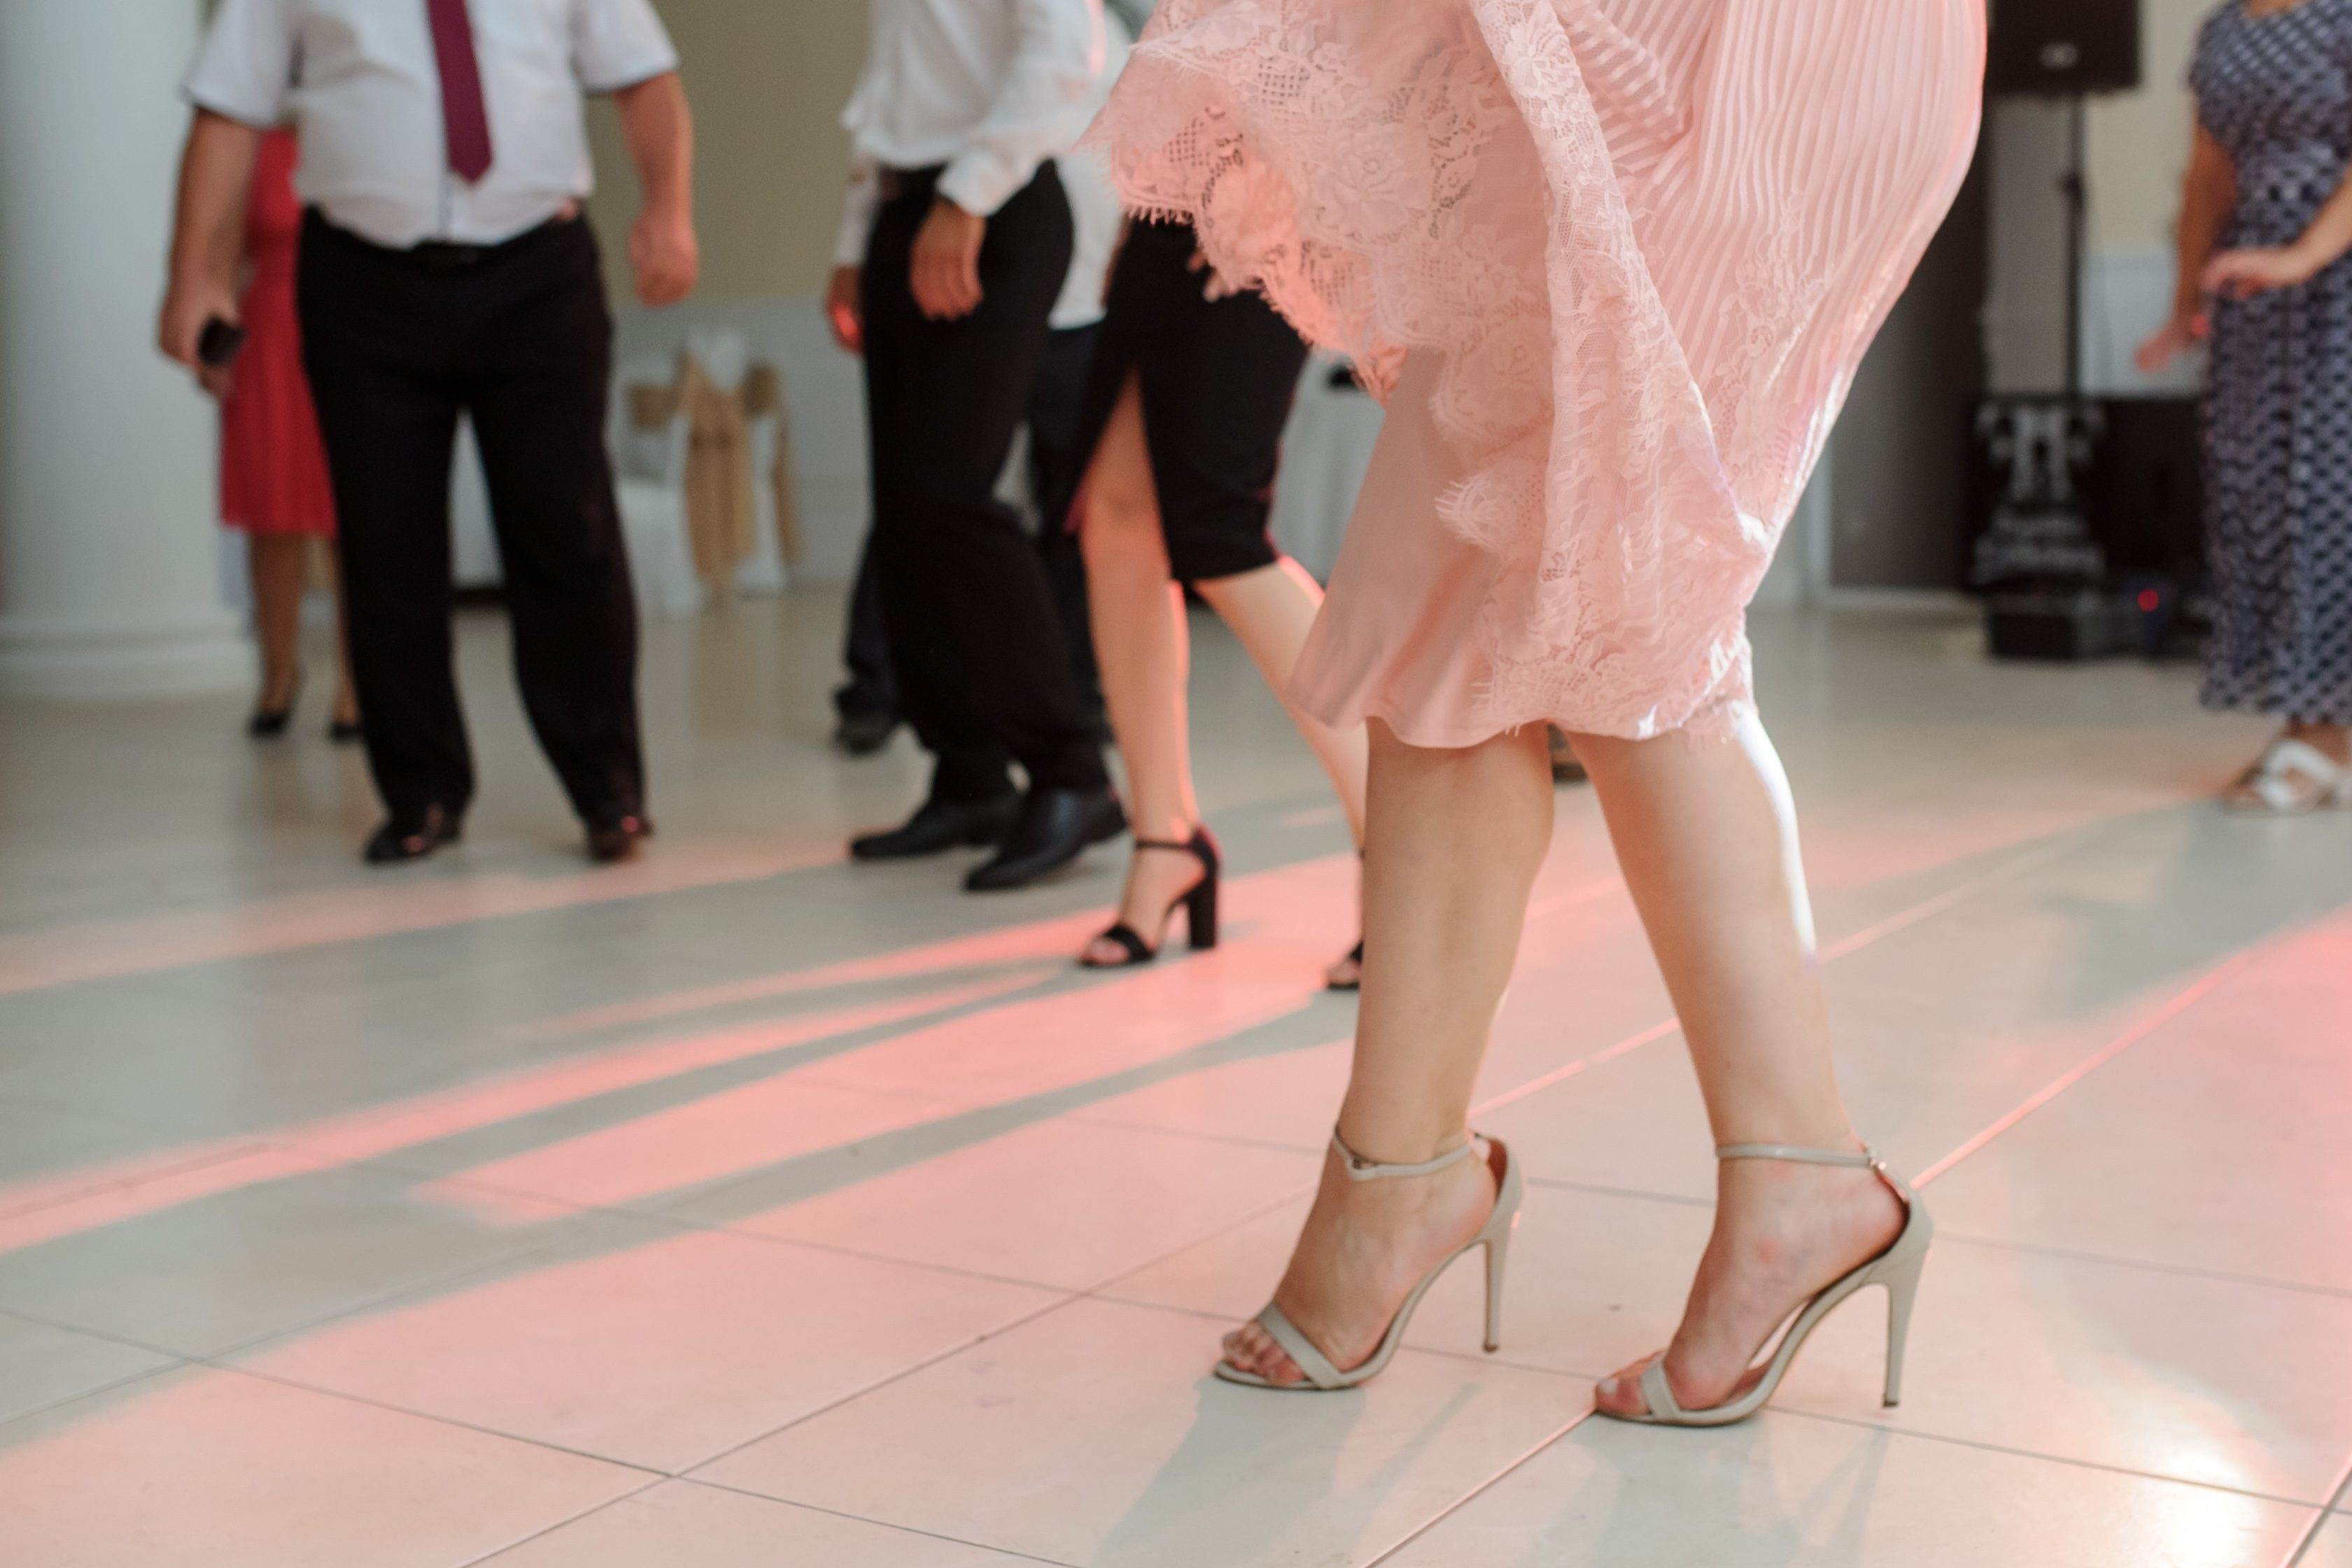 close up photo of woman legs in stylish high hell shoes on floor dancing at a wedding party